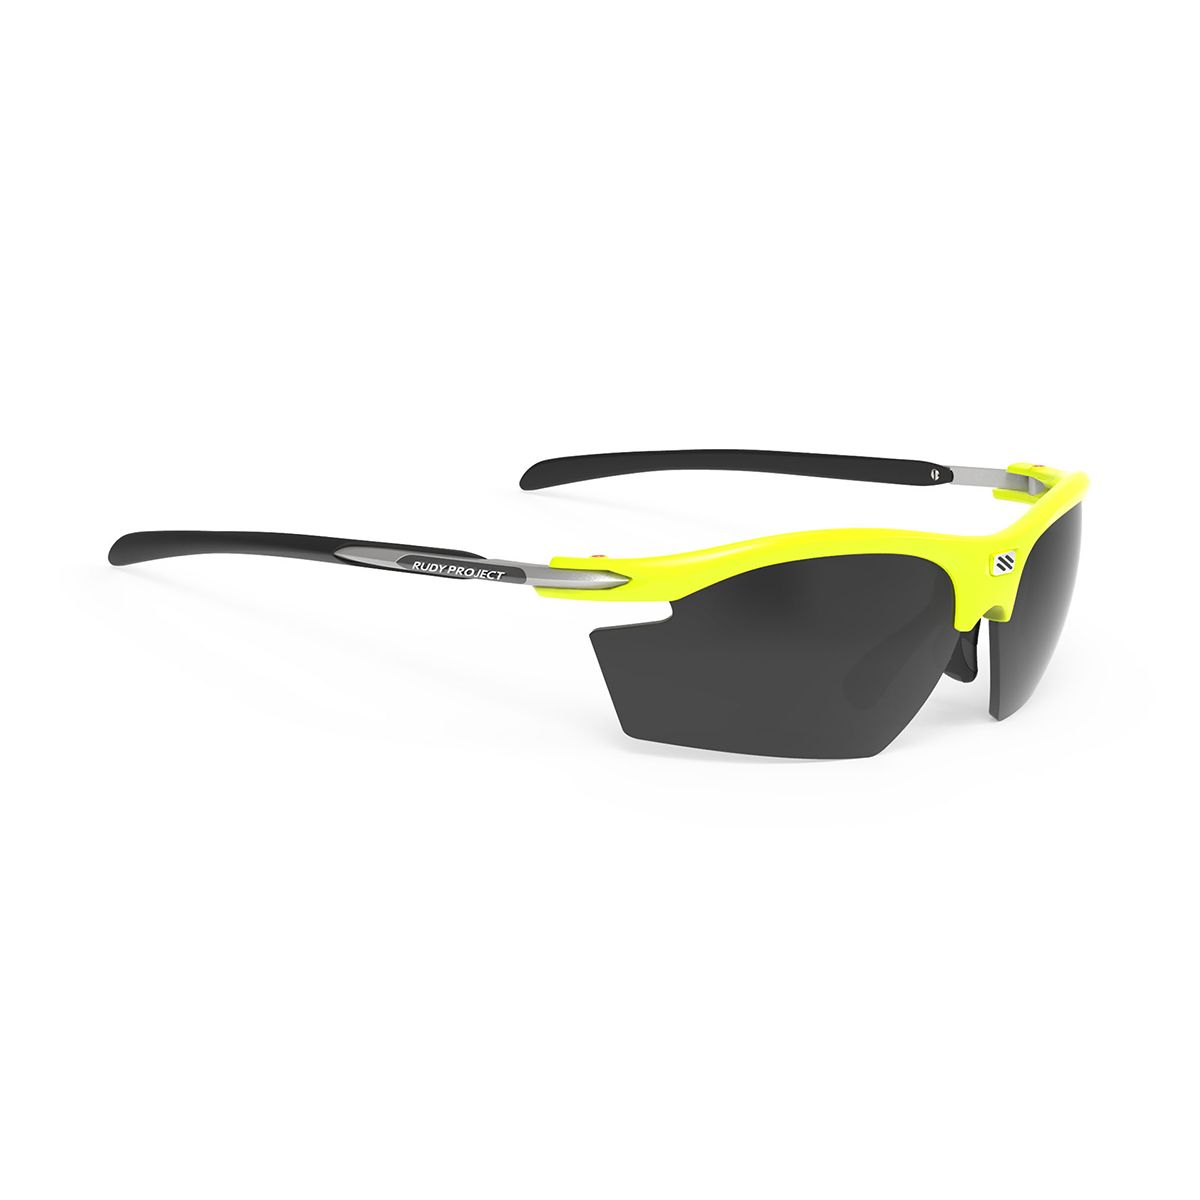 7238d90afb Achetez RUDY PROJECT RYDON sports glasses